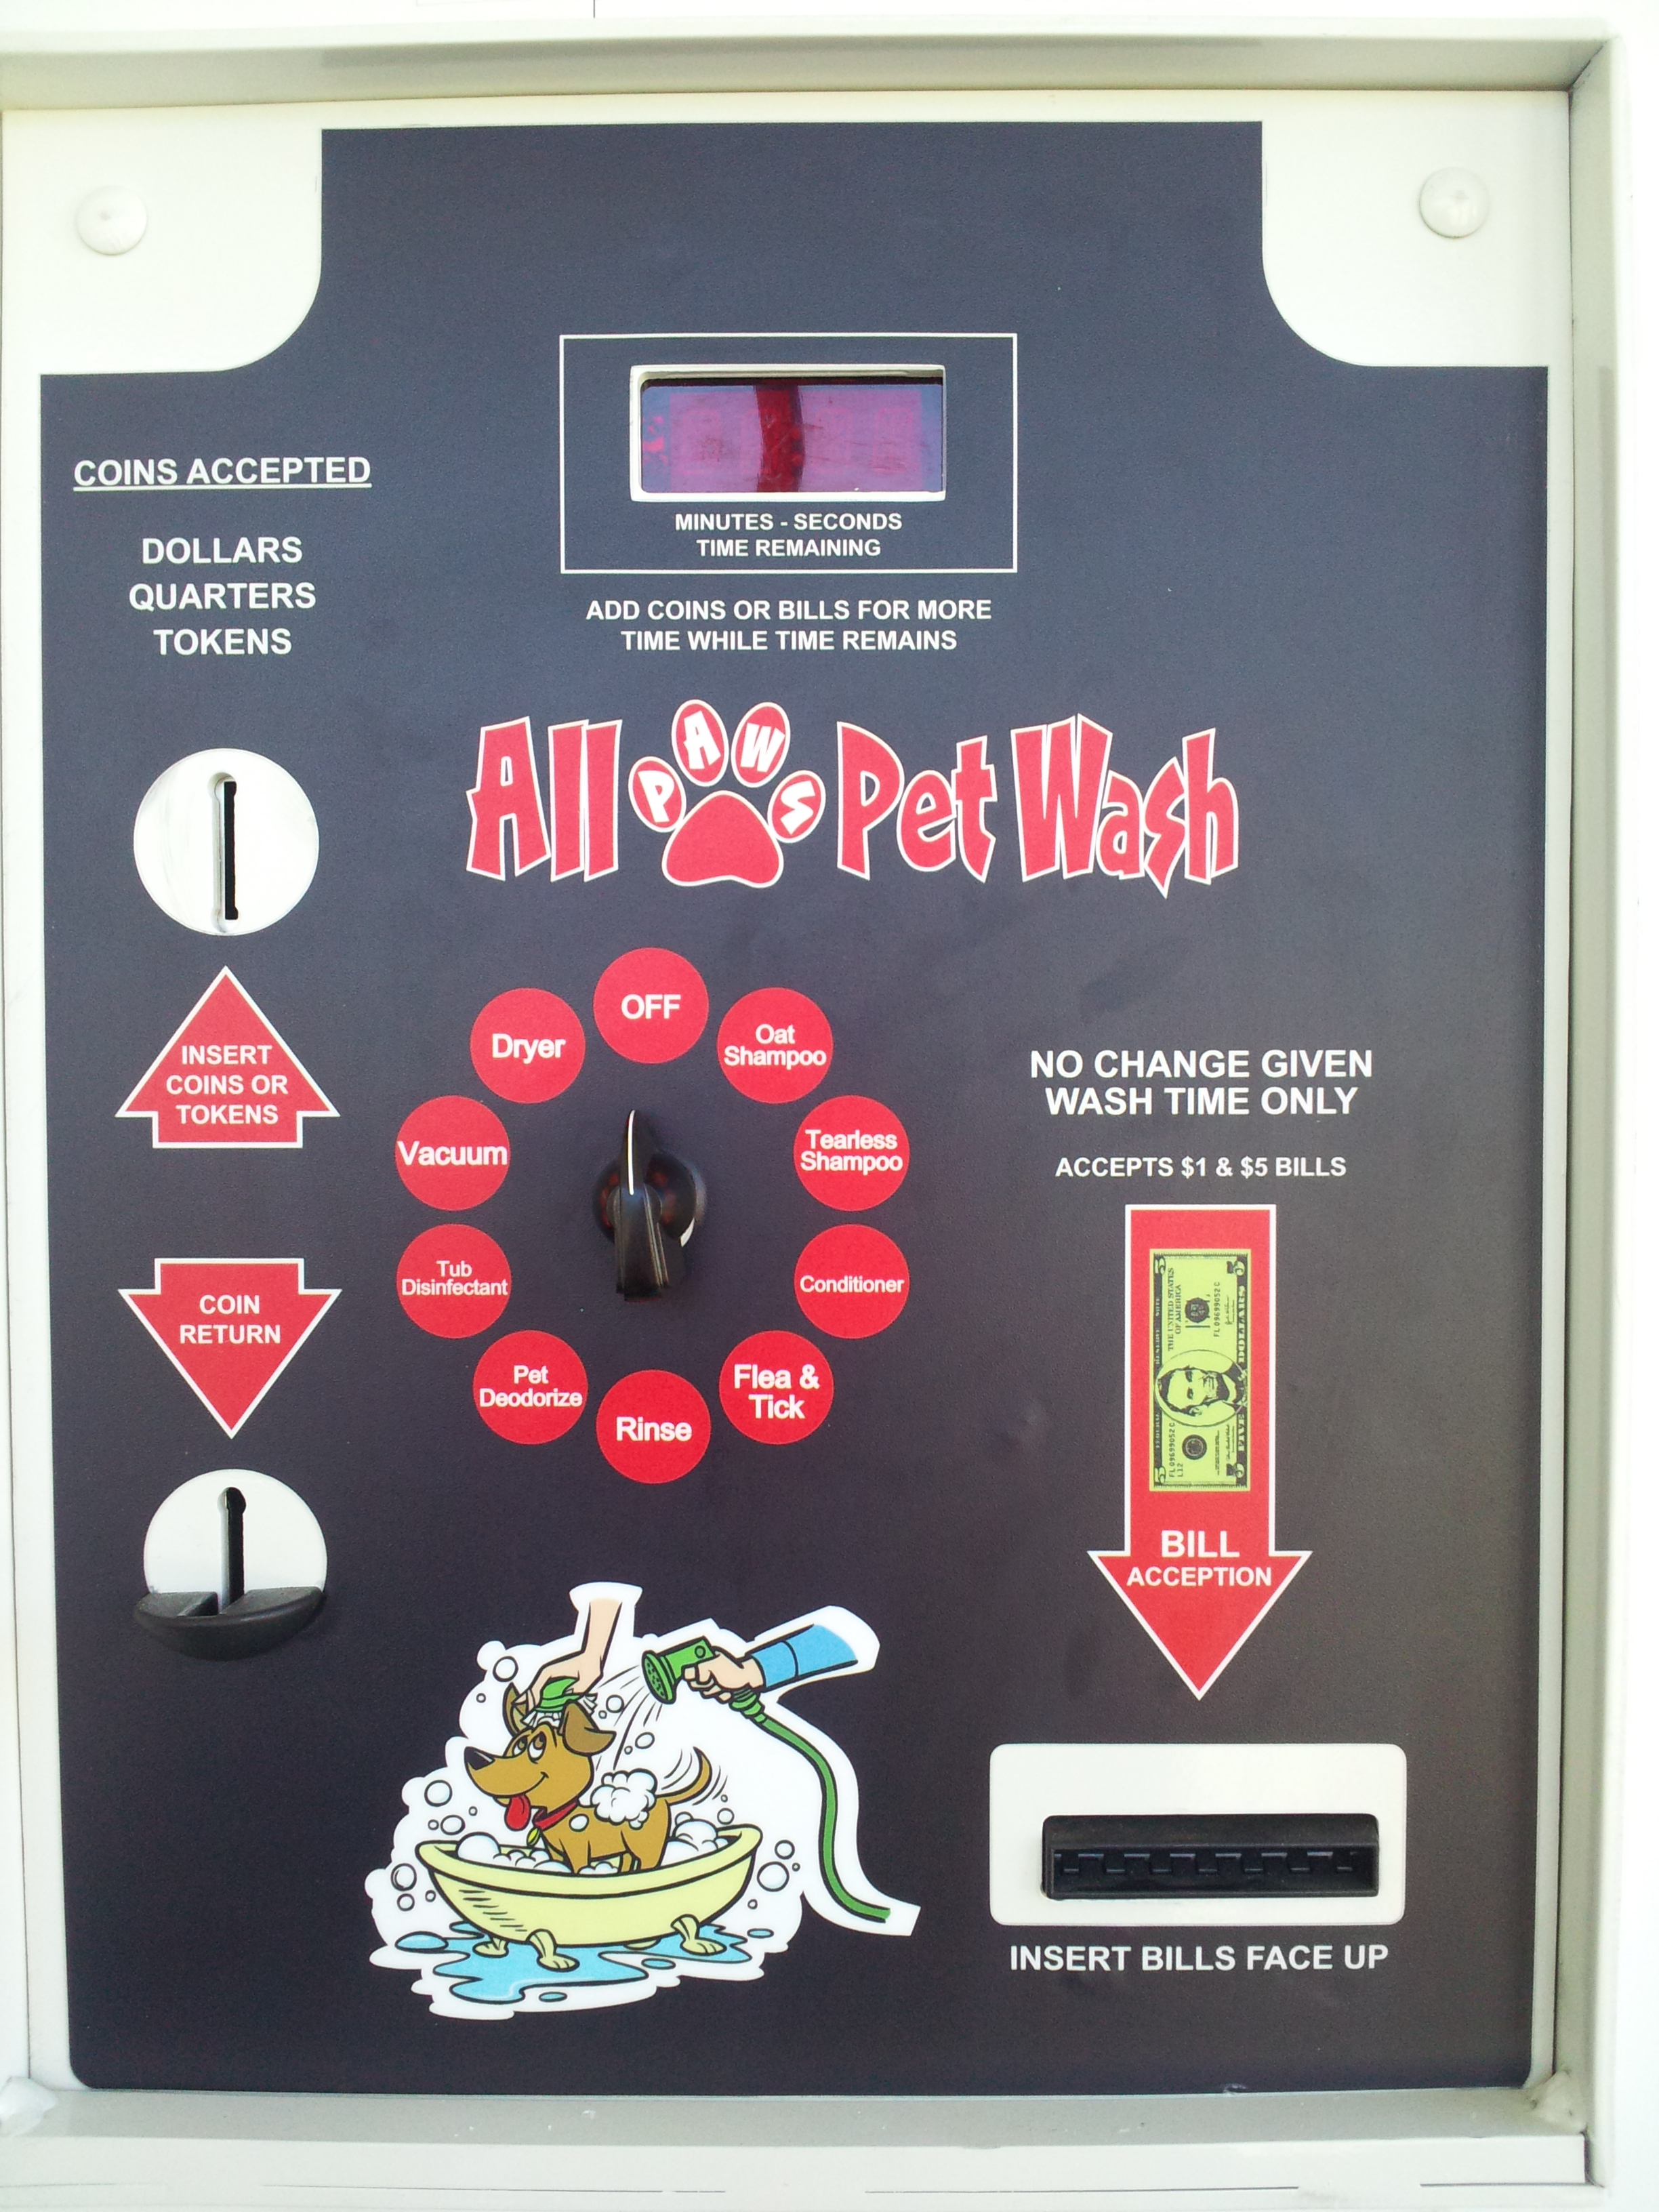 Car wash pet wash dog bath stations pet wash installations all coin operated dog wash payment options 2011 08 16 095838 self solutioingenieria Gallery